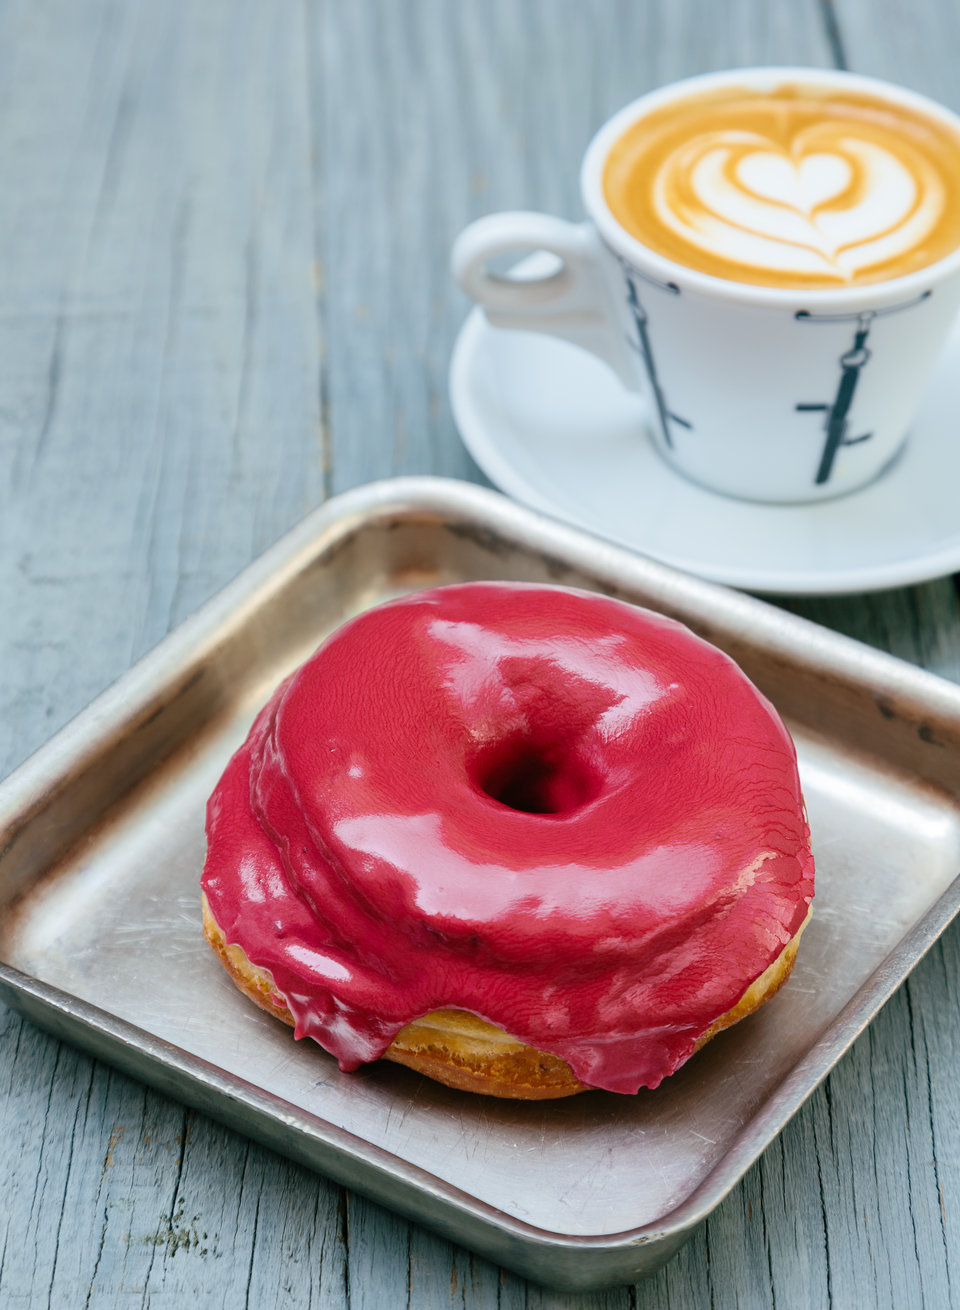 10 Reasons New Orleans Donuts Dunk National Chains